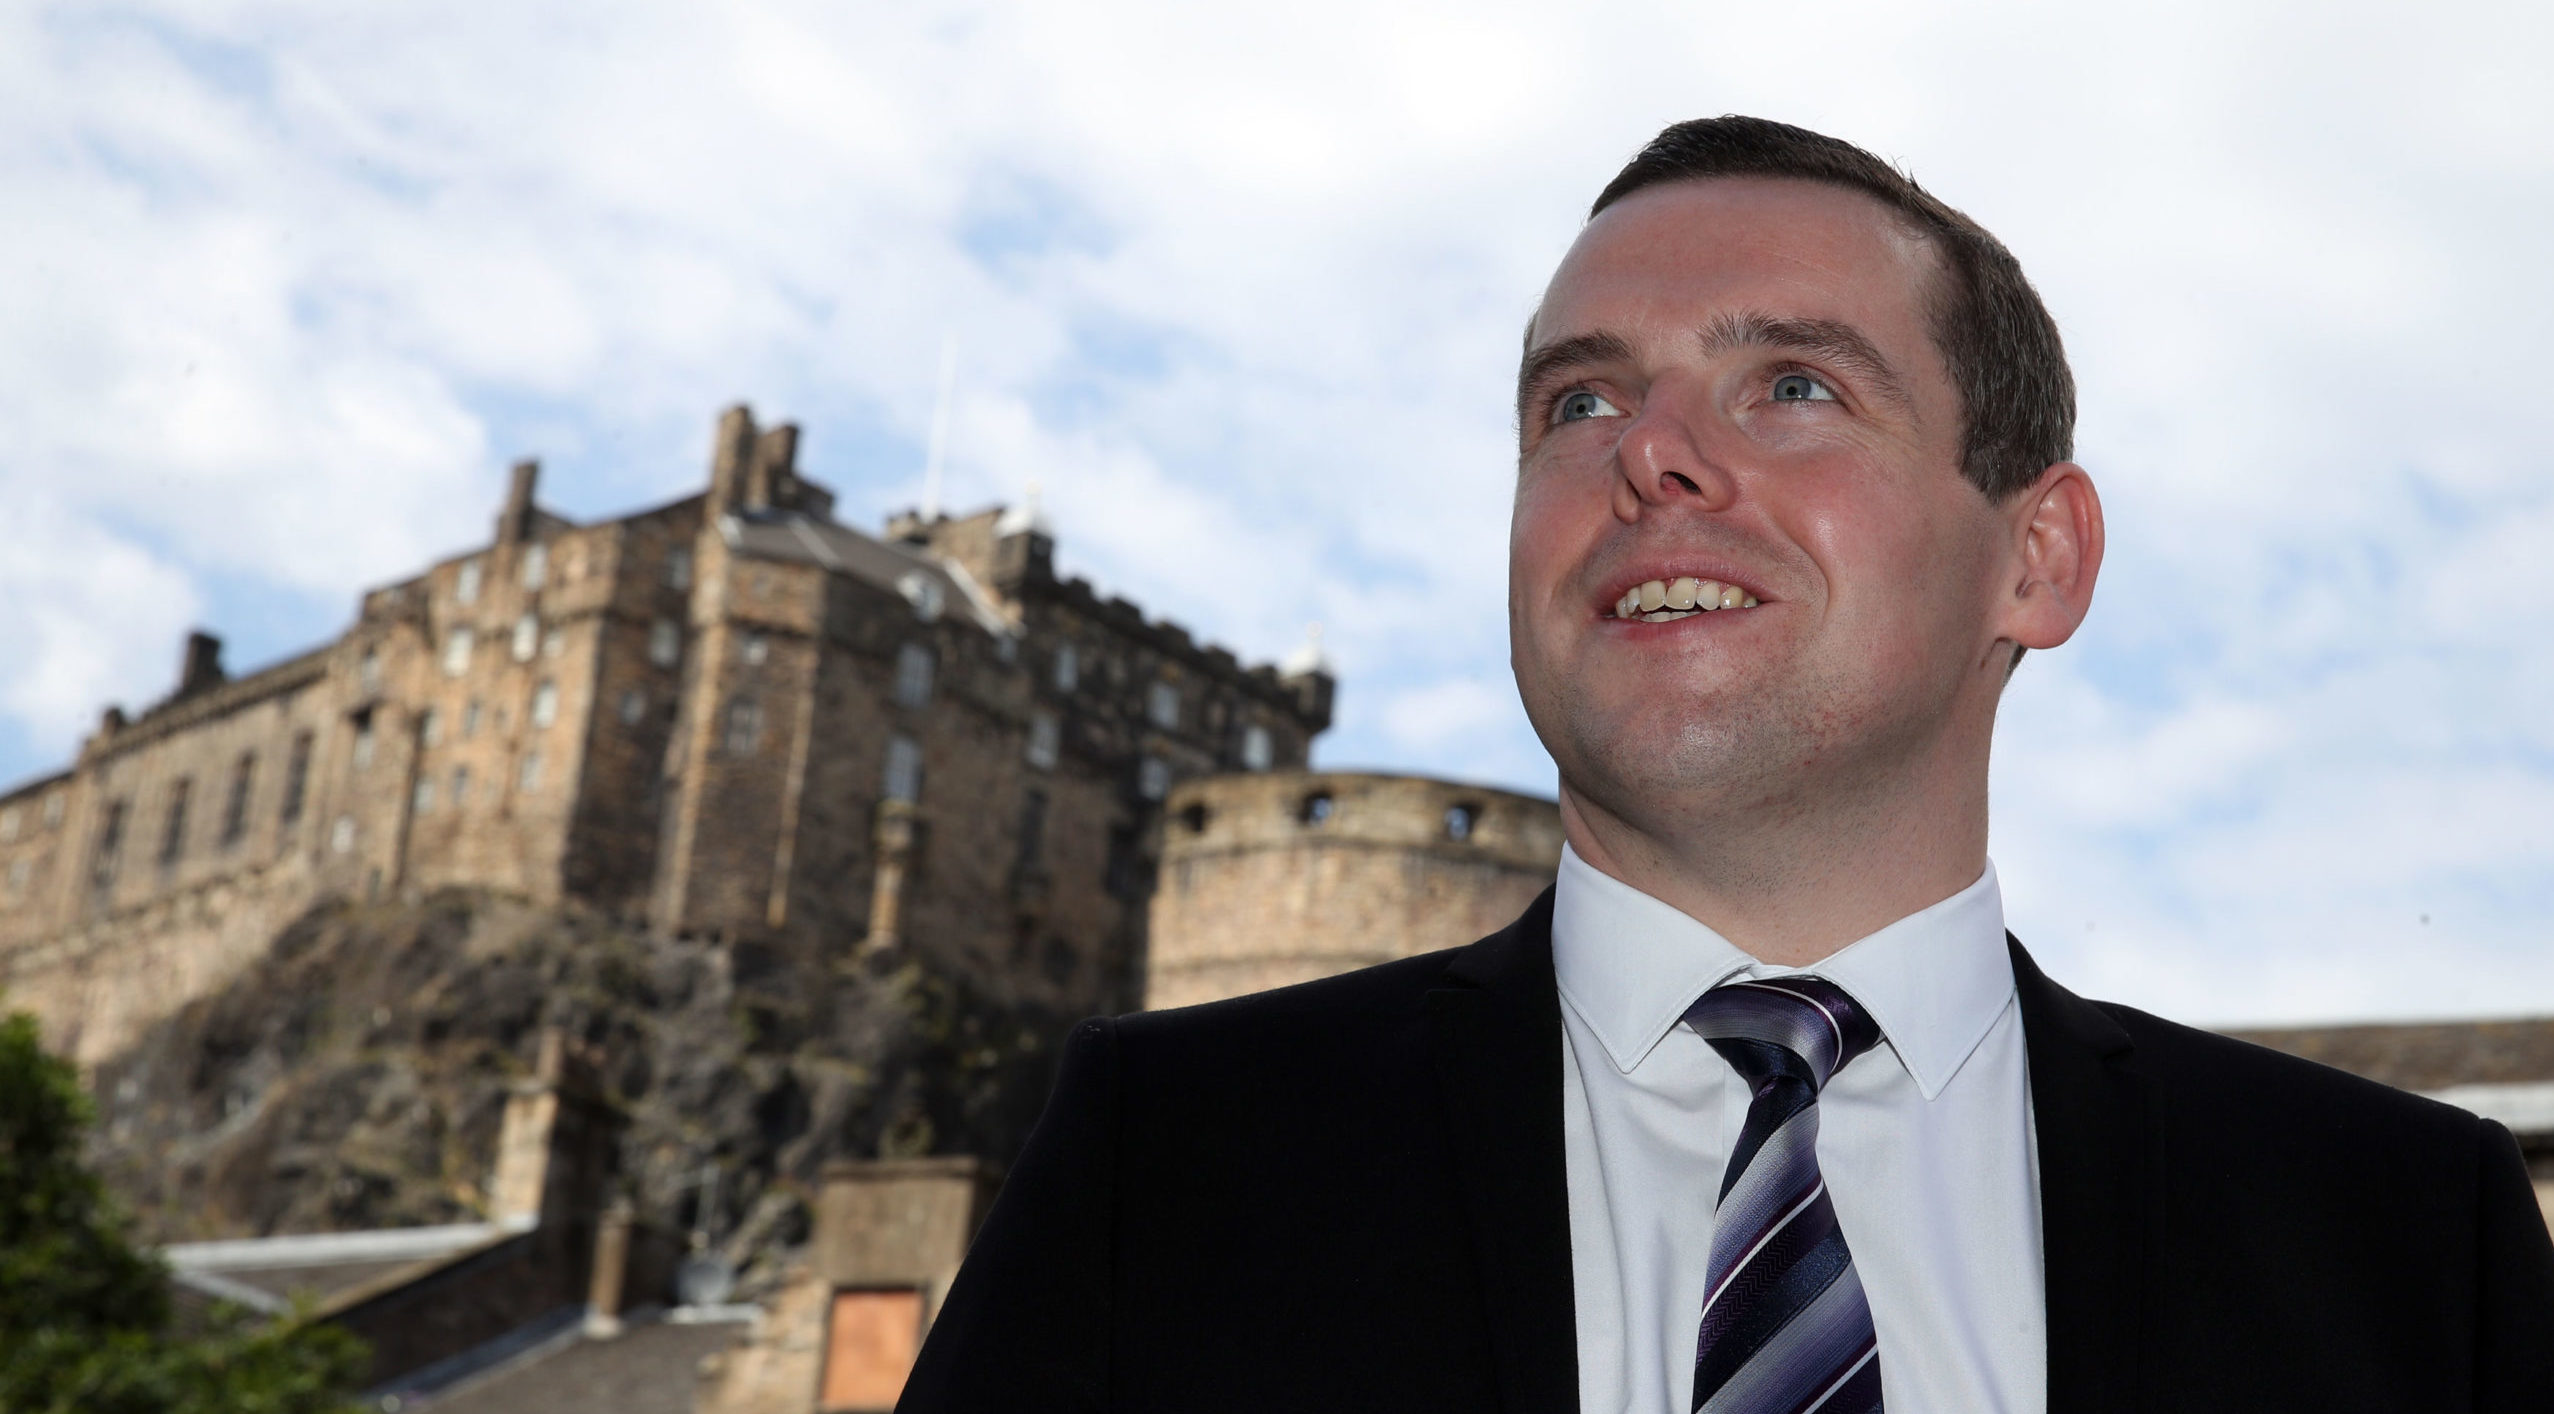 Scottish Conservative MP Douglas Ross in Edinburgh, after he confirmed he will stand for the leadership of the Scottish Conservatives.